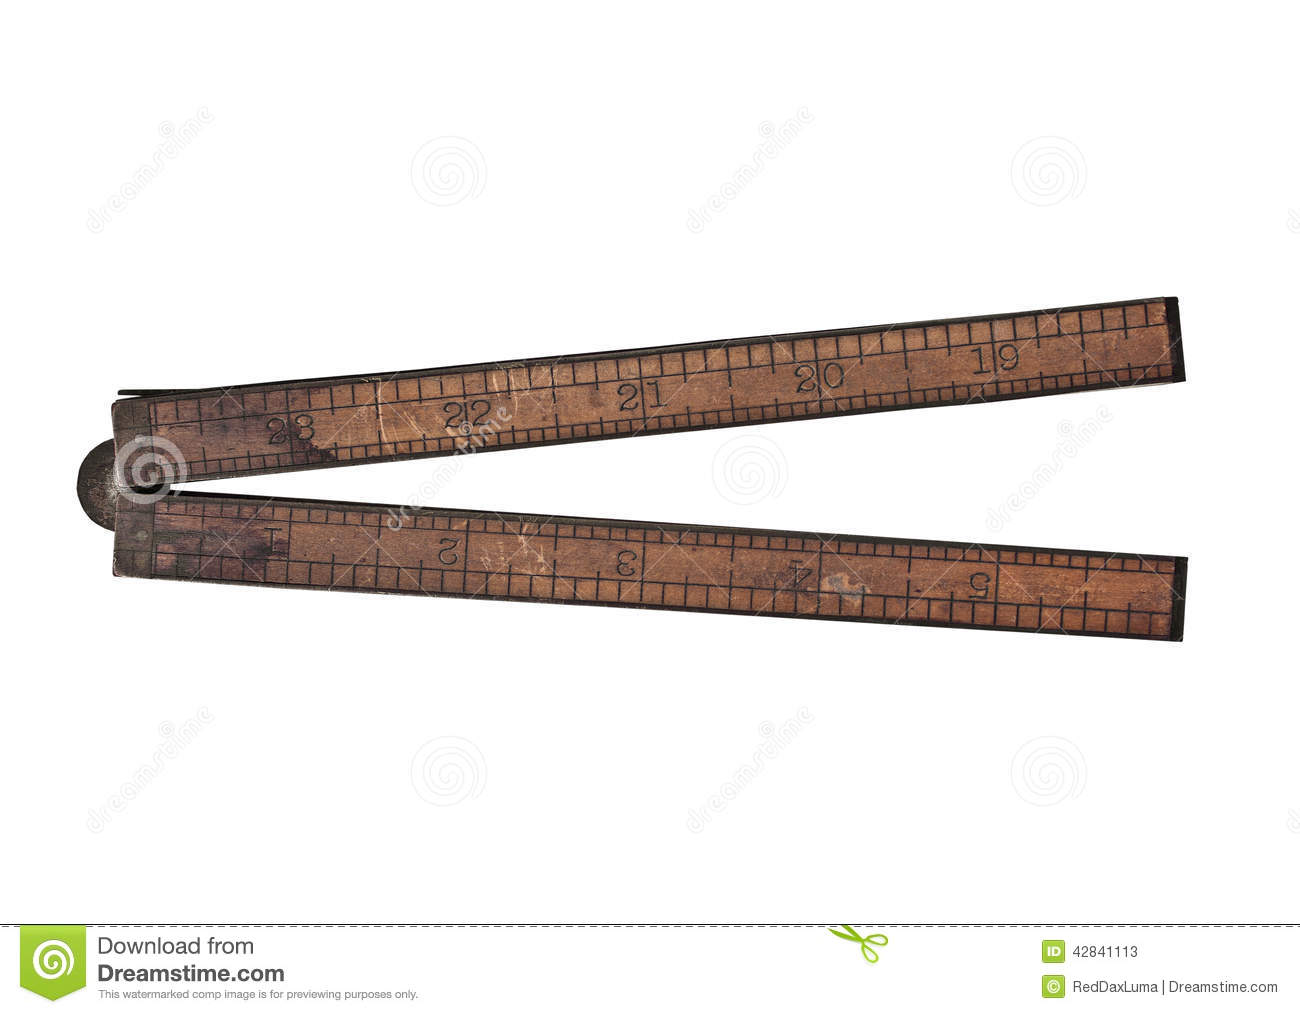 Picture of: Vintage Wooden Ruler Stock Image Image Of Single Length 42841113